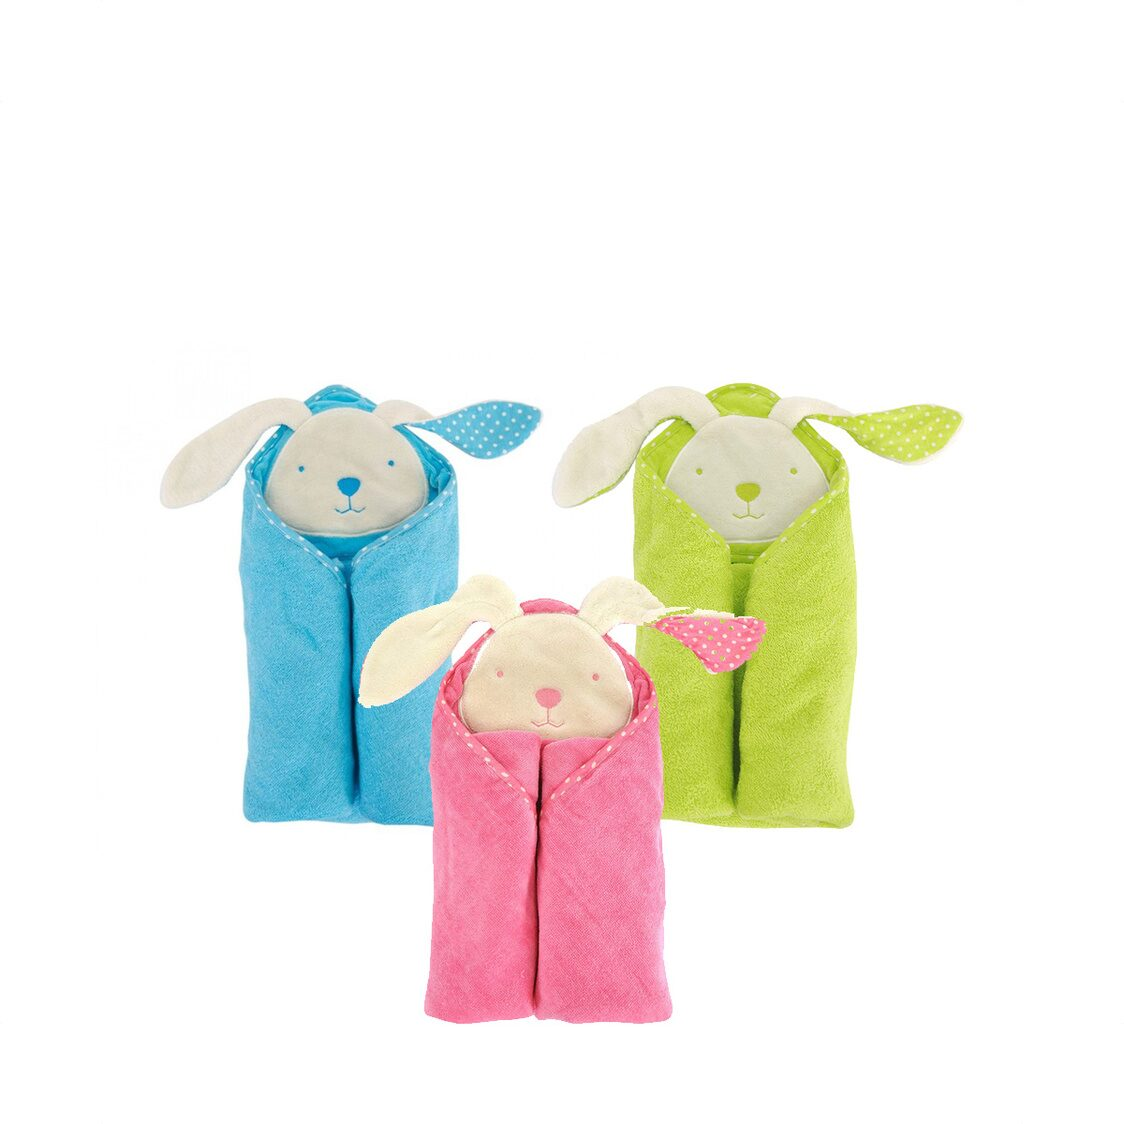 Hooded Towel 2 for 58